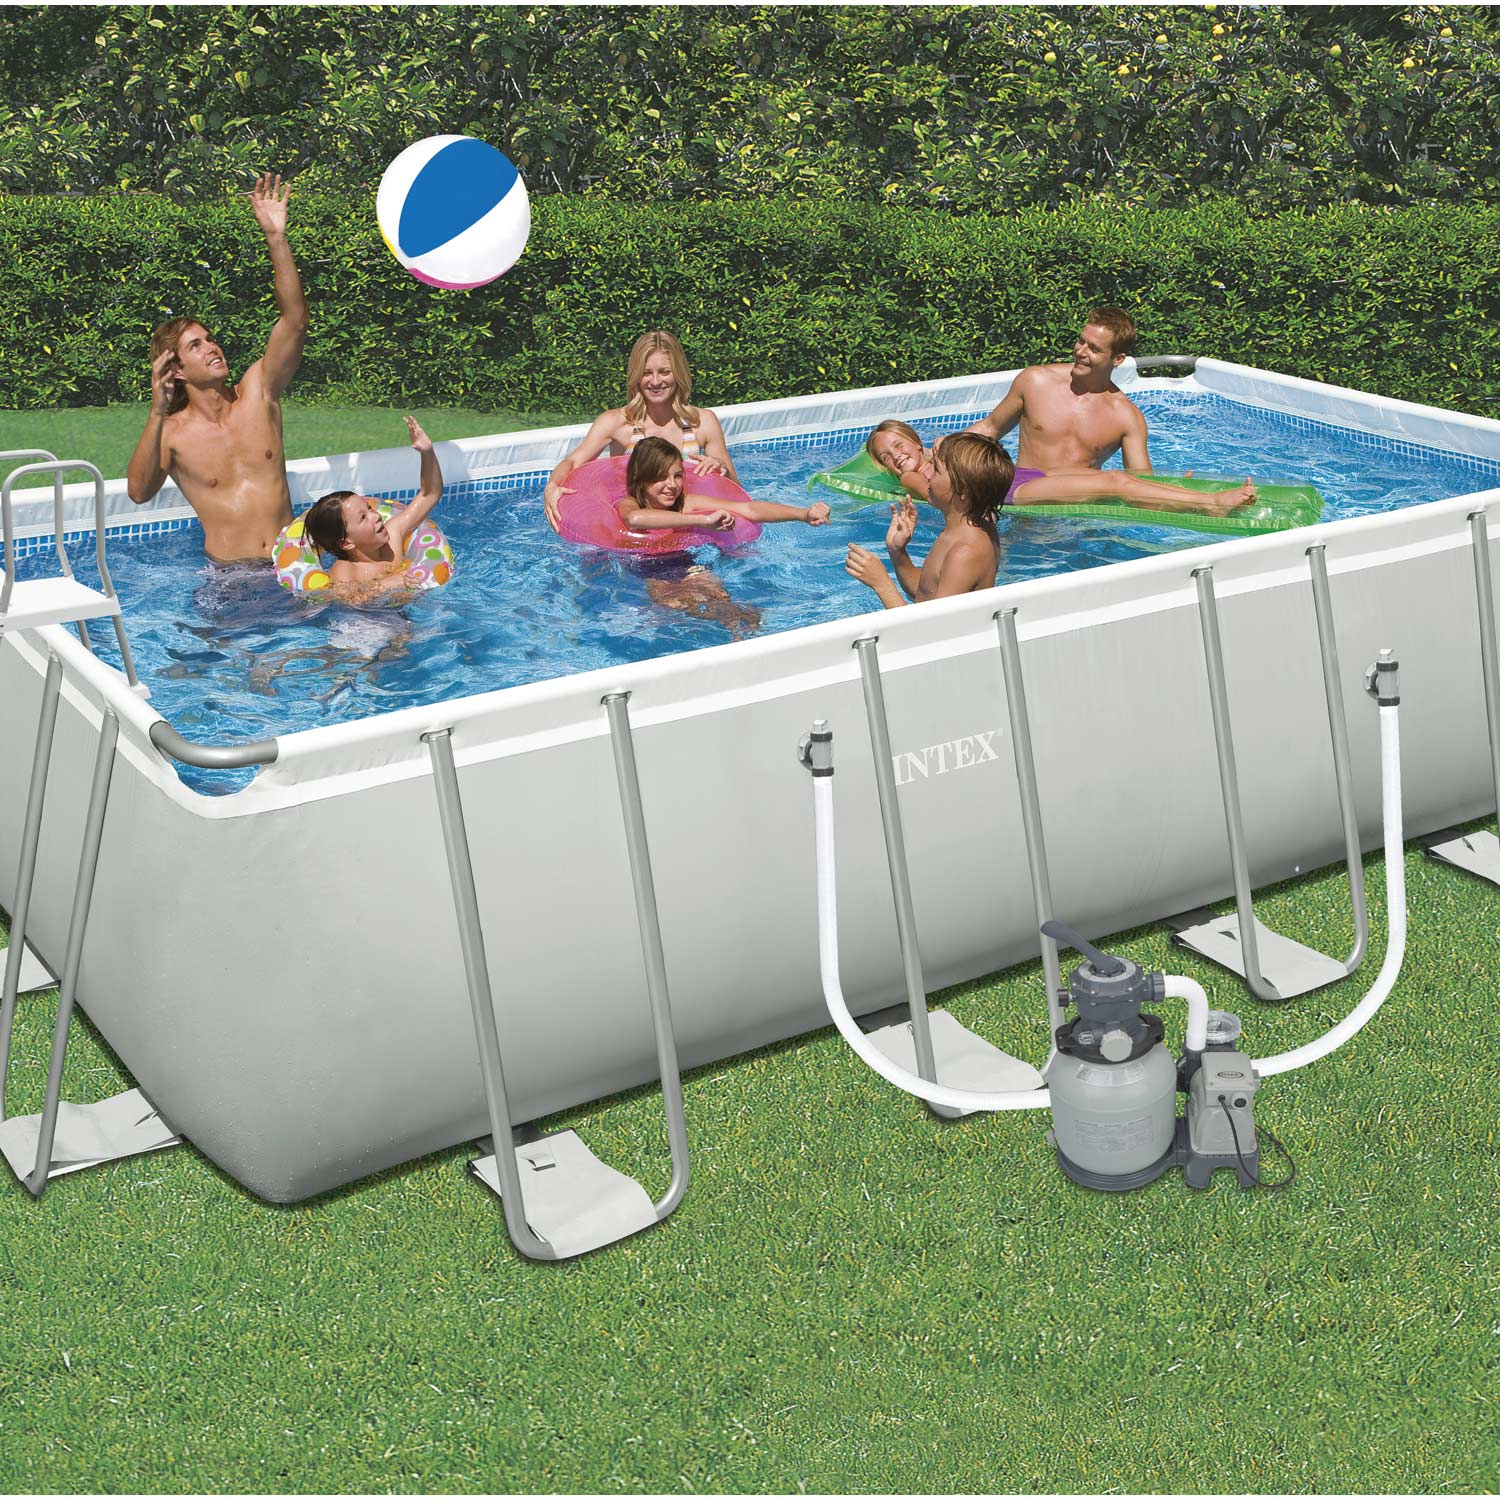 aspirateur piscine rectangulaire